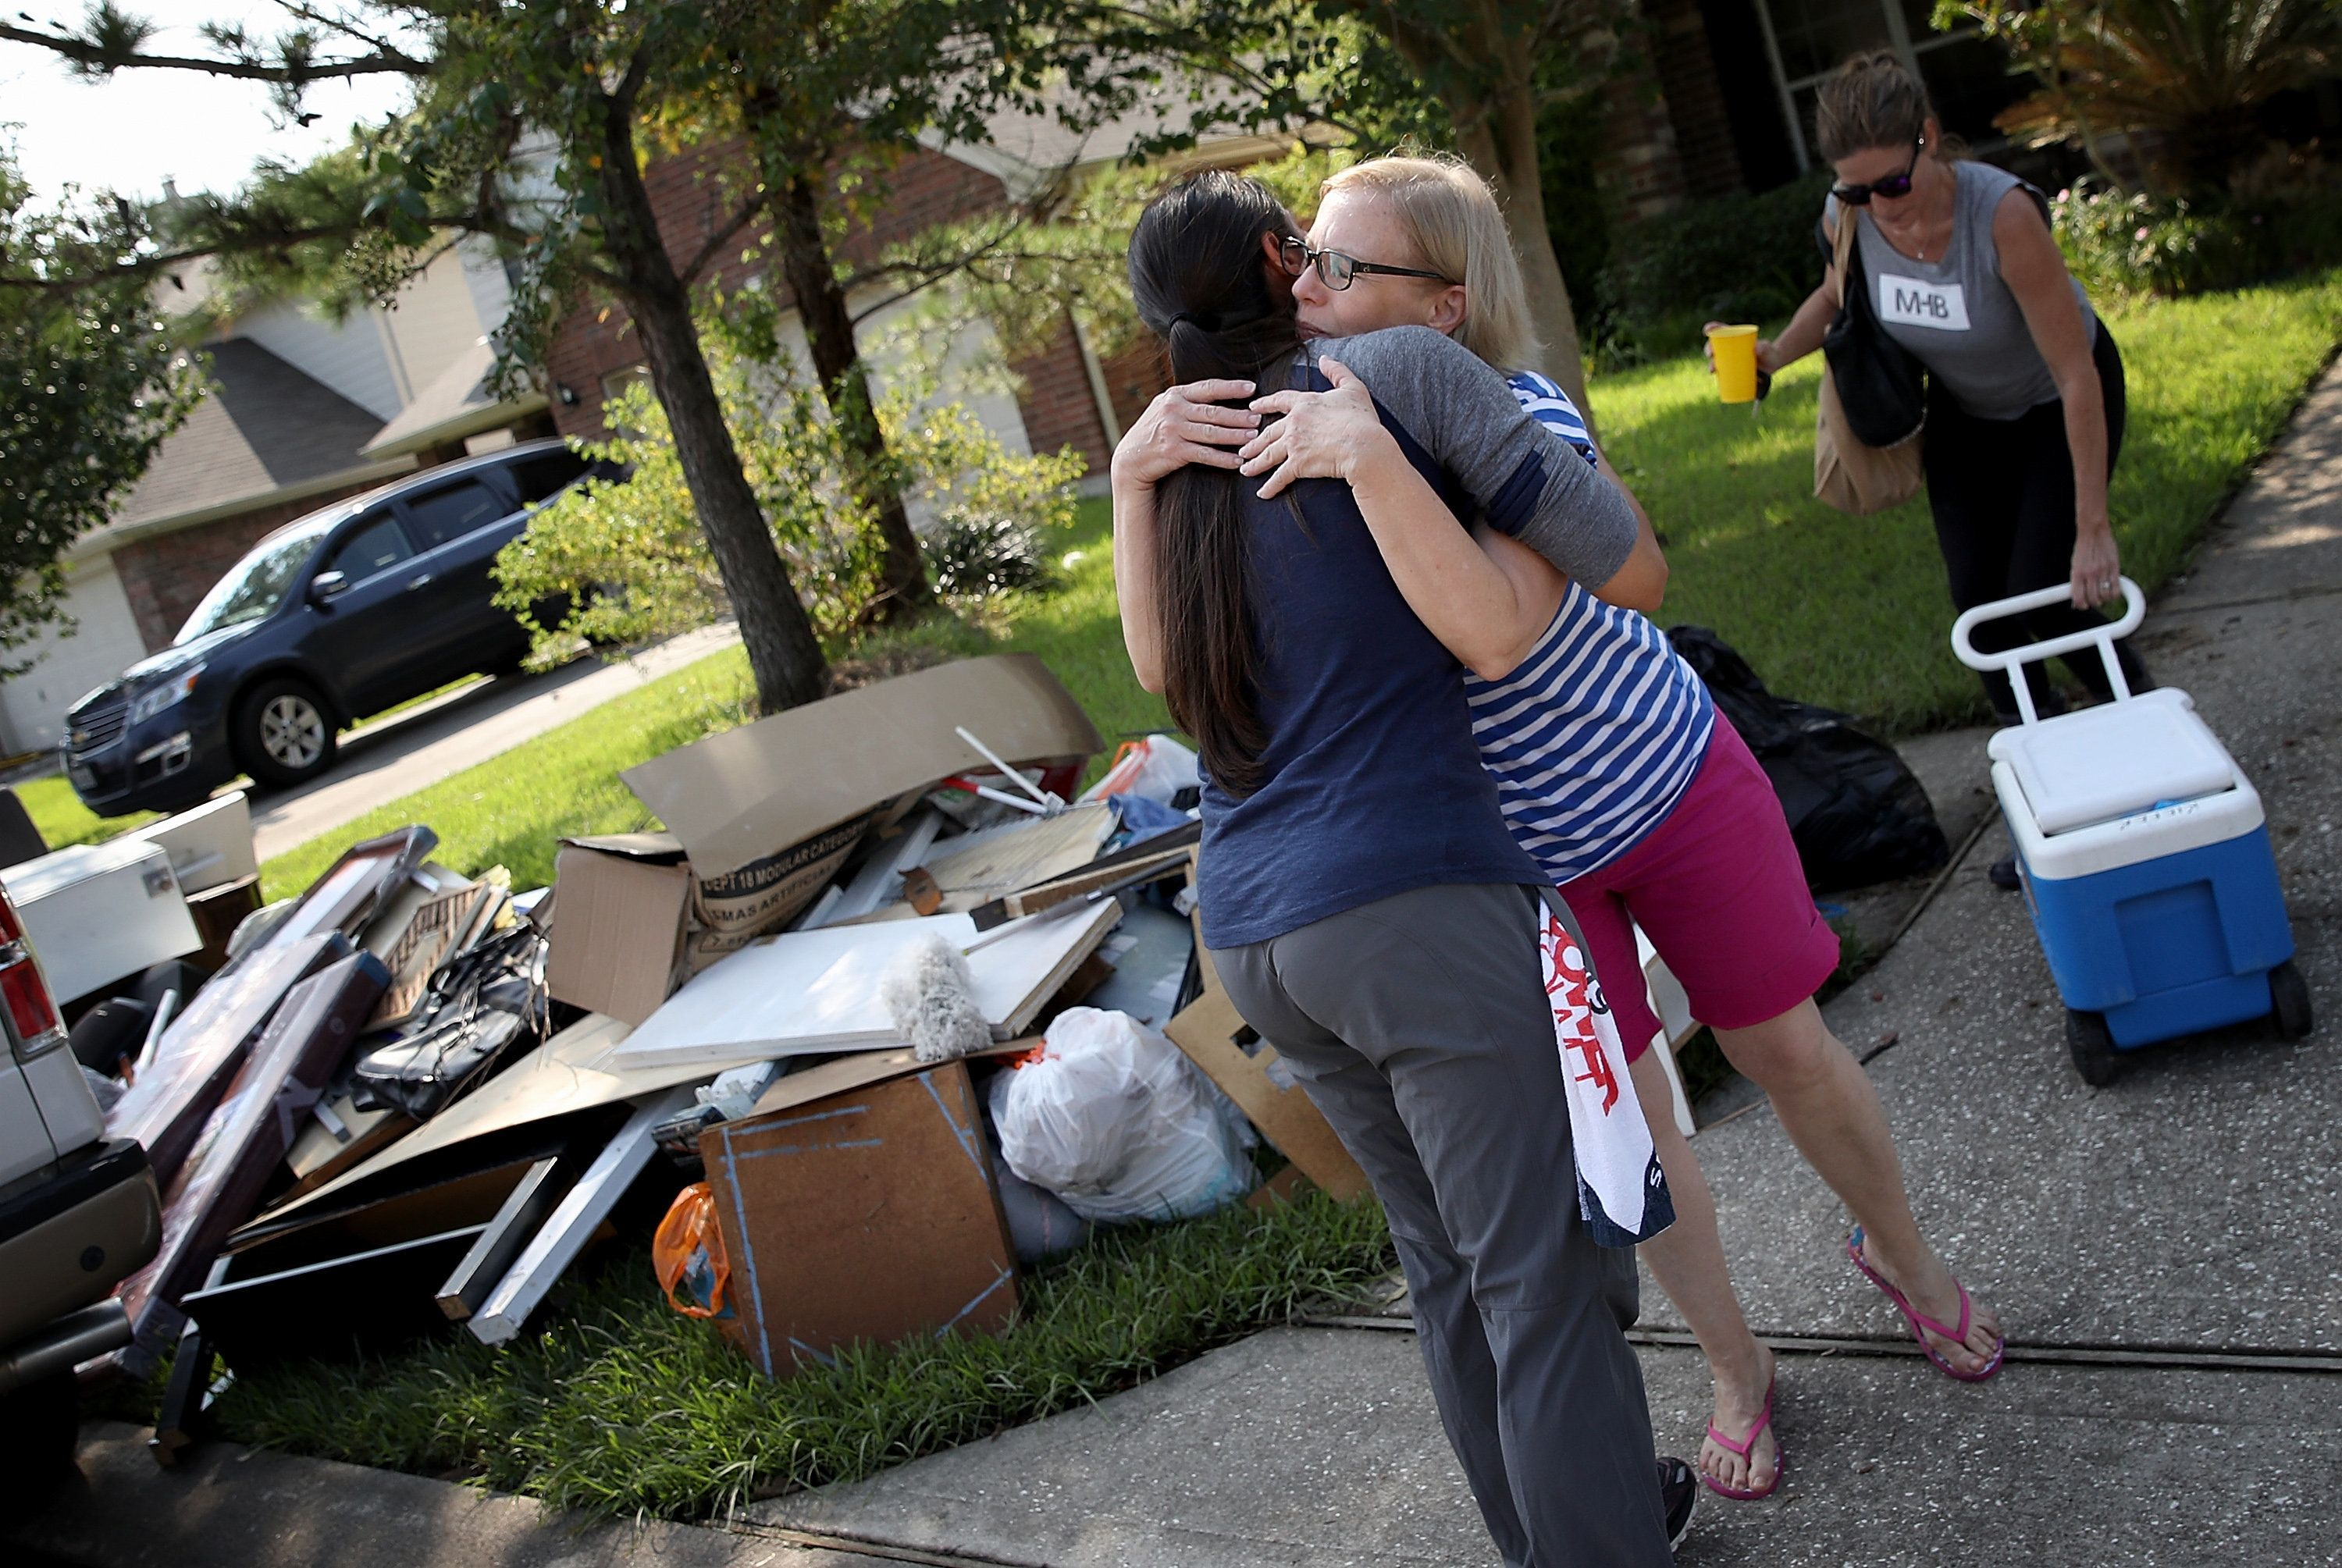 DICKINSON, TX - SEPTEMBER 01:  A Dickinson resident hugs a friend who came to help her remove possessions damaged by flooding brought on by Hurricane Harvey September 1, 2017 in Dickinson, Texas. Dickinson was hit by Hurricane Harvey extremely hard with major flooding in many areas of the city and residents there are beginning the long process of recovering from the storm.  (Photo by Win McNamee/Getty Images)